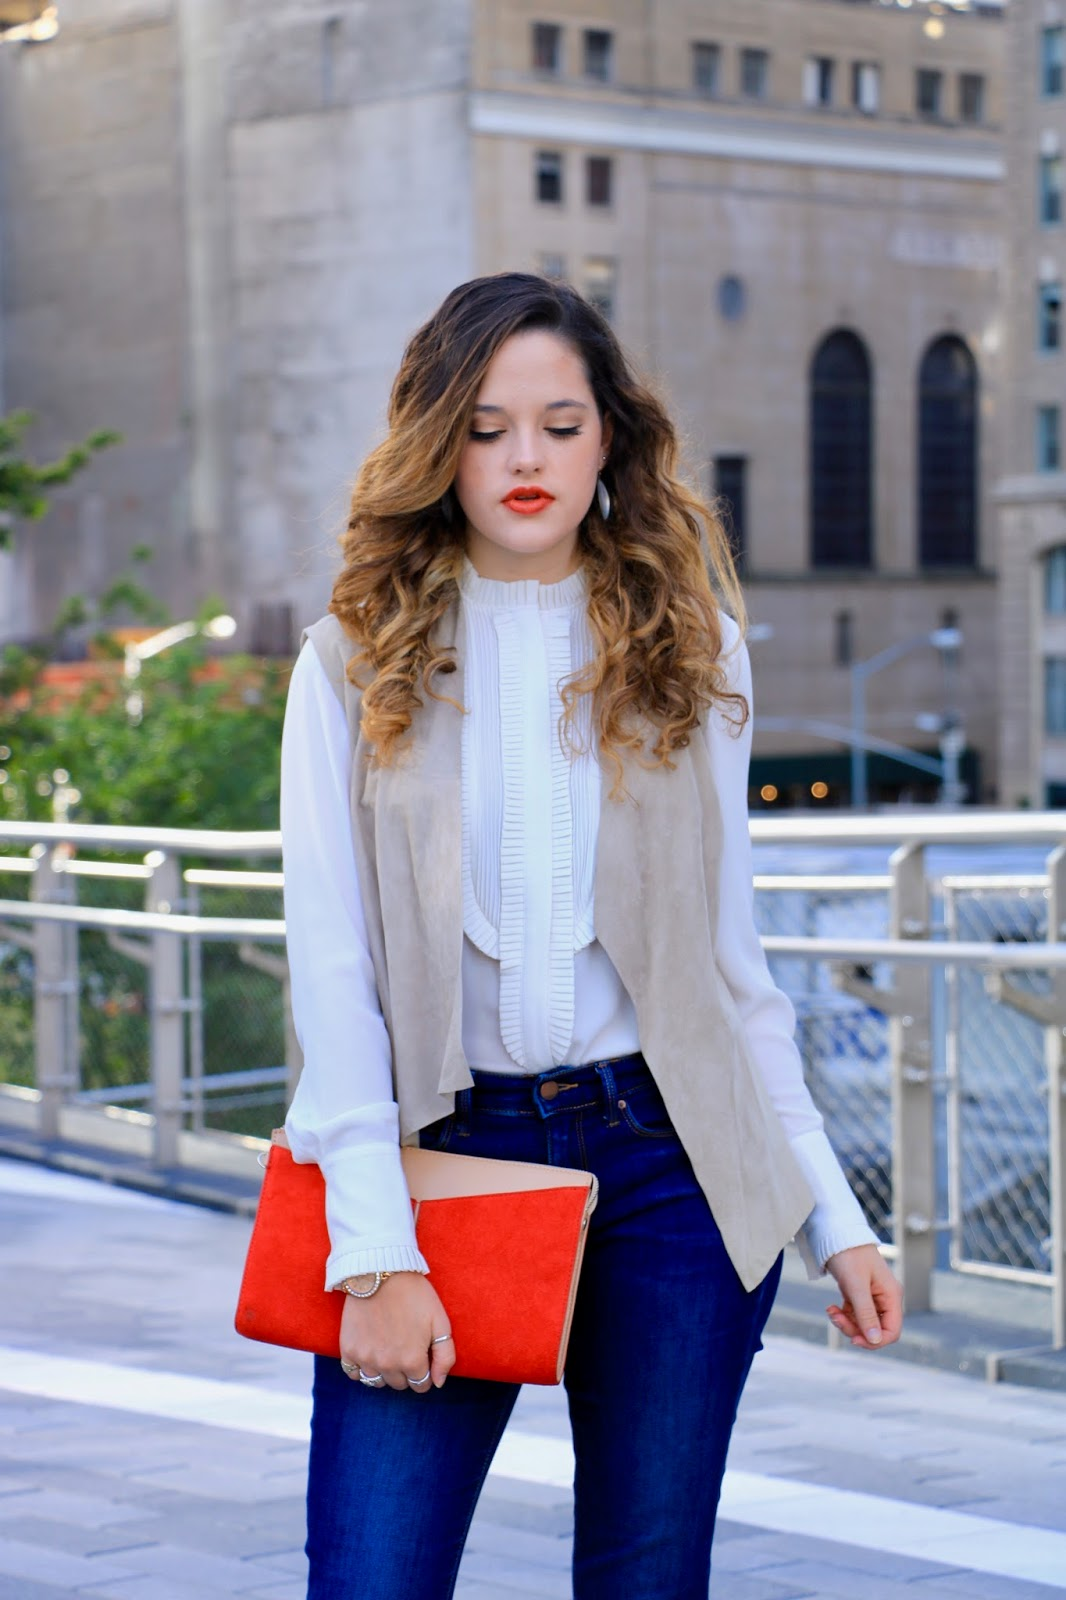 Nyc fashion blogger Kathleen Harper